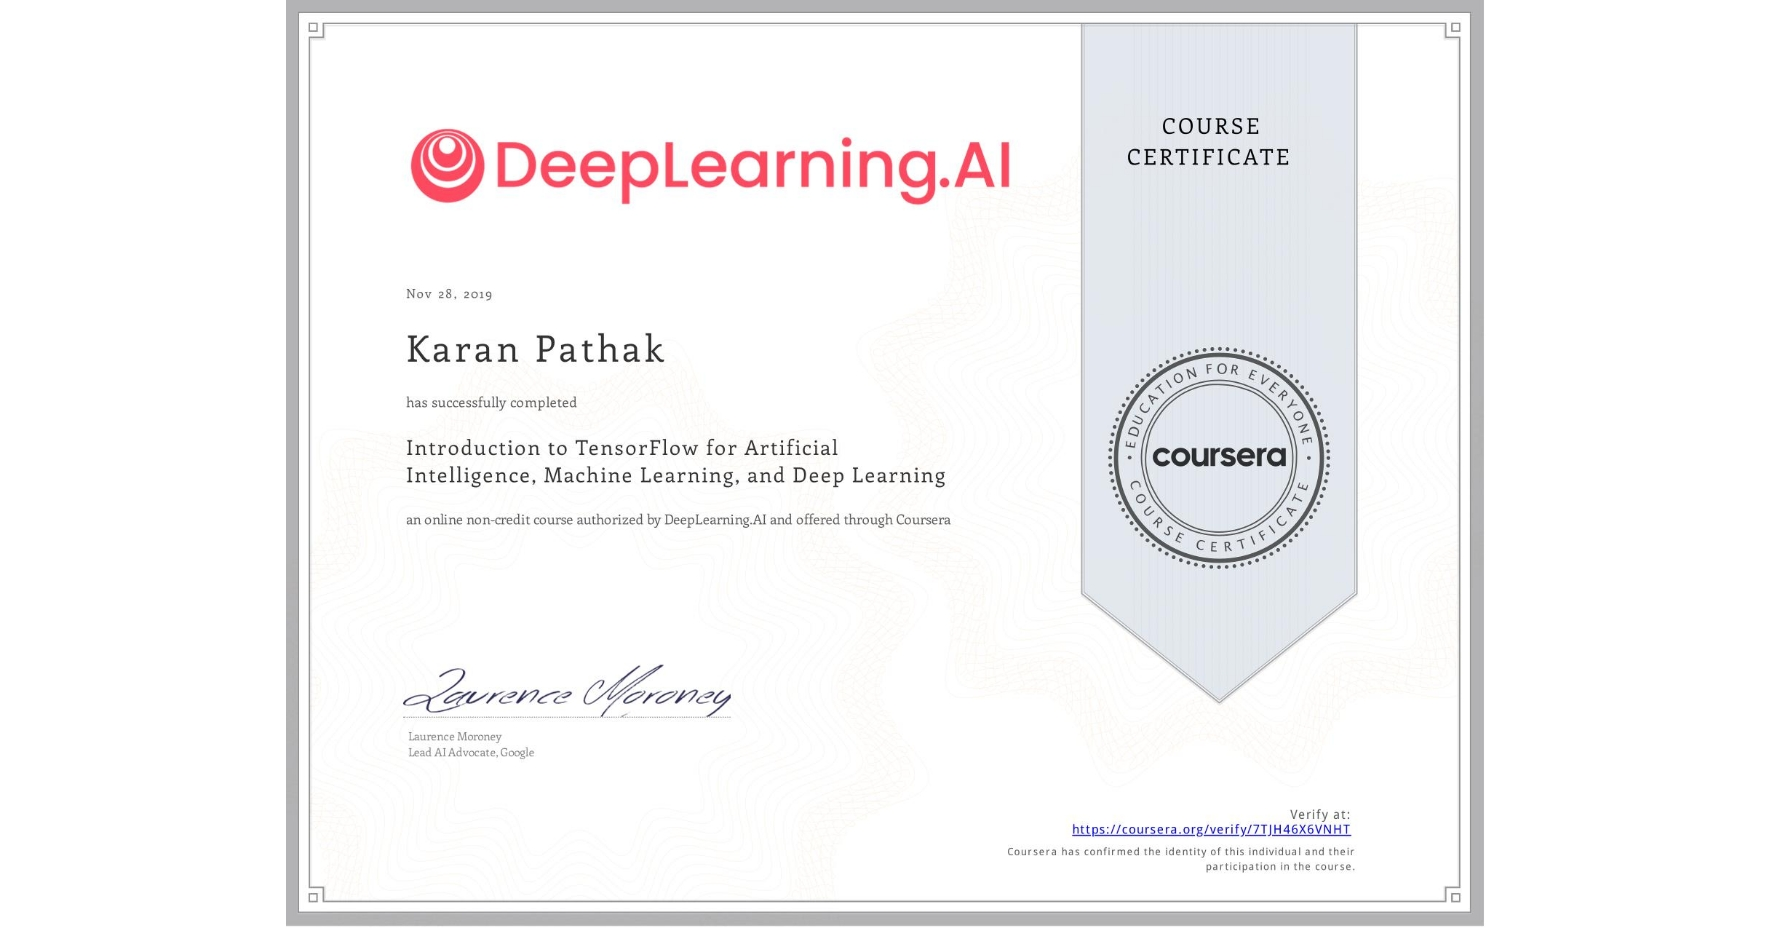 View certificate for Karan Pathak, Introduction to TensorFlow for Artificial Intelligence, Machine Learning, and Deep Learning, an online non-credit course authorized by DeepLearning.AI and offered through Coursera